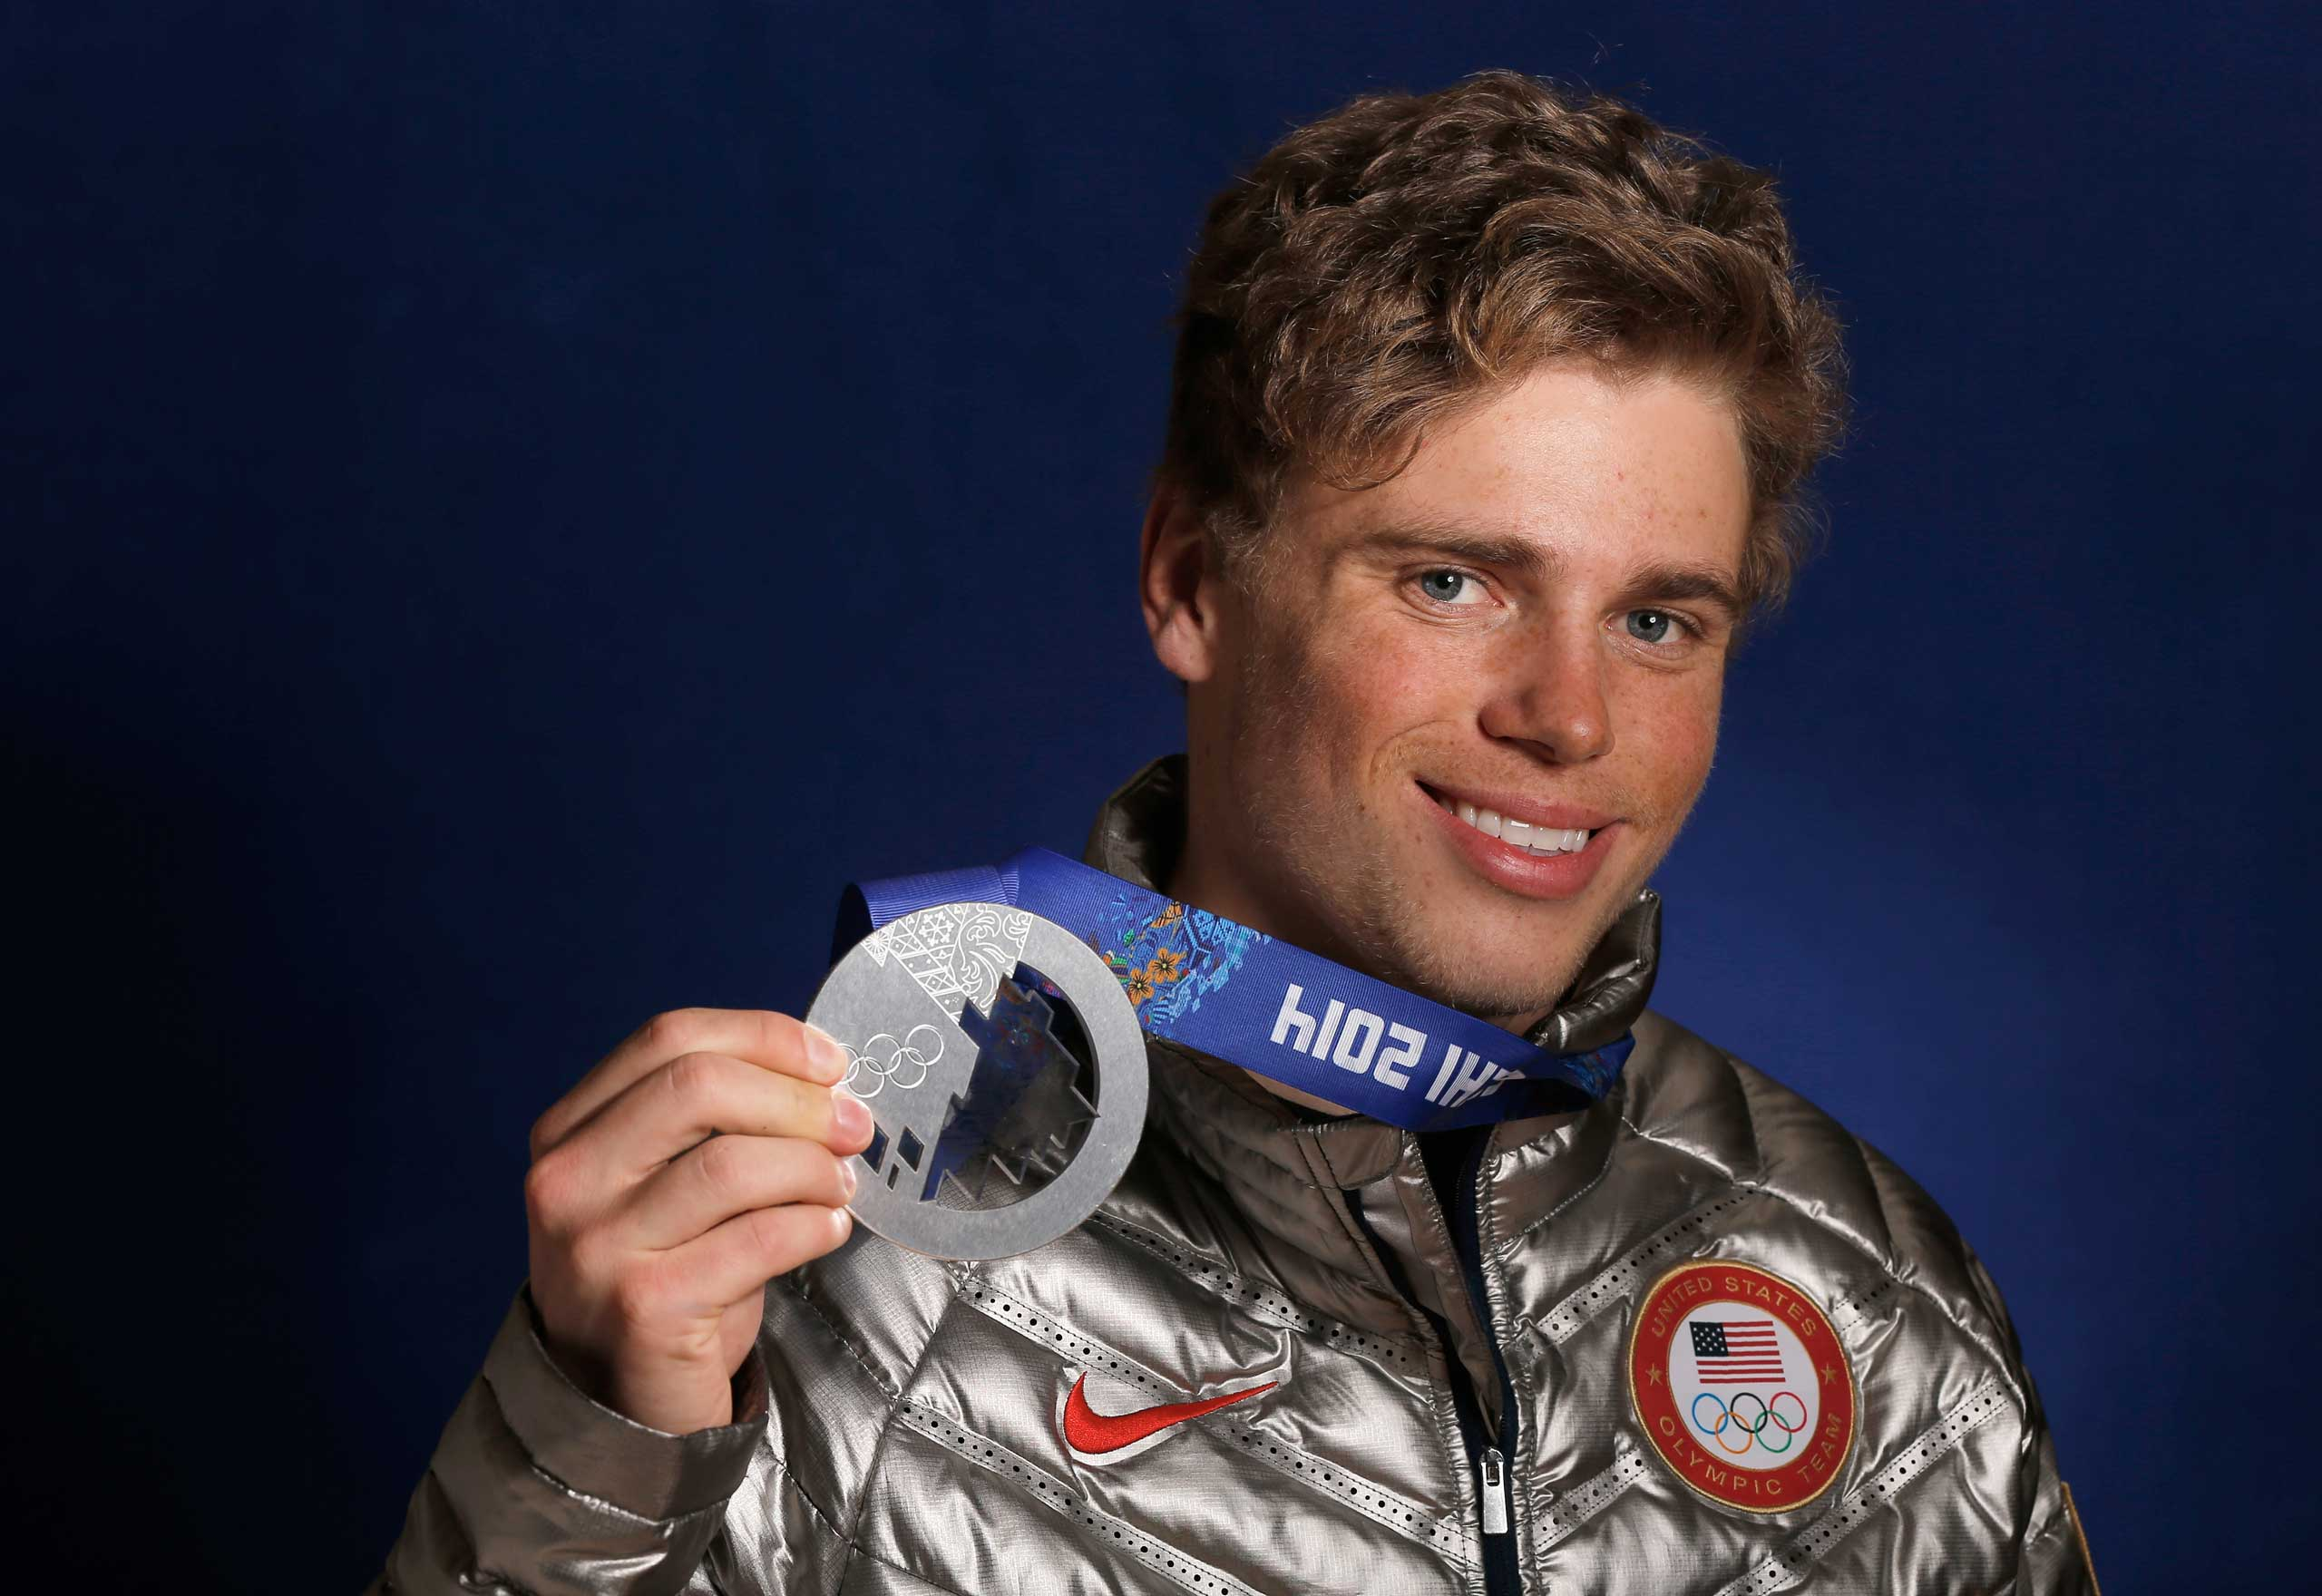 Gus Kenworthy of the USA Skiing team poses with his silver medal in the Olympic Park during the Sochi 2014 Winter Olympics in Sochi, Russia, on Feb. 14, 2014.